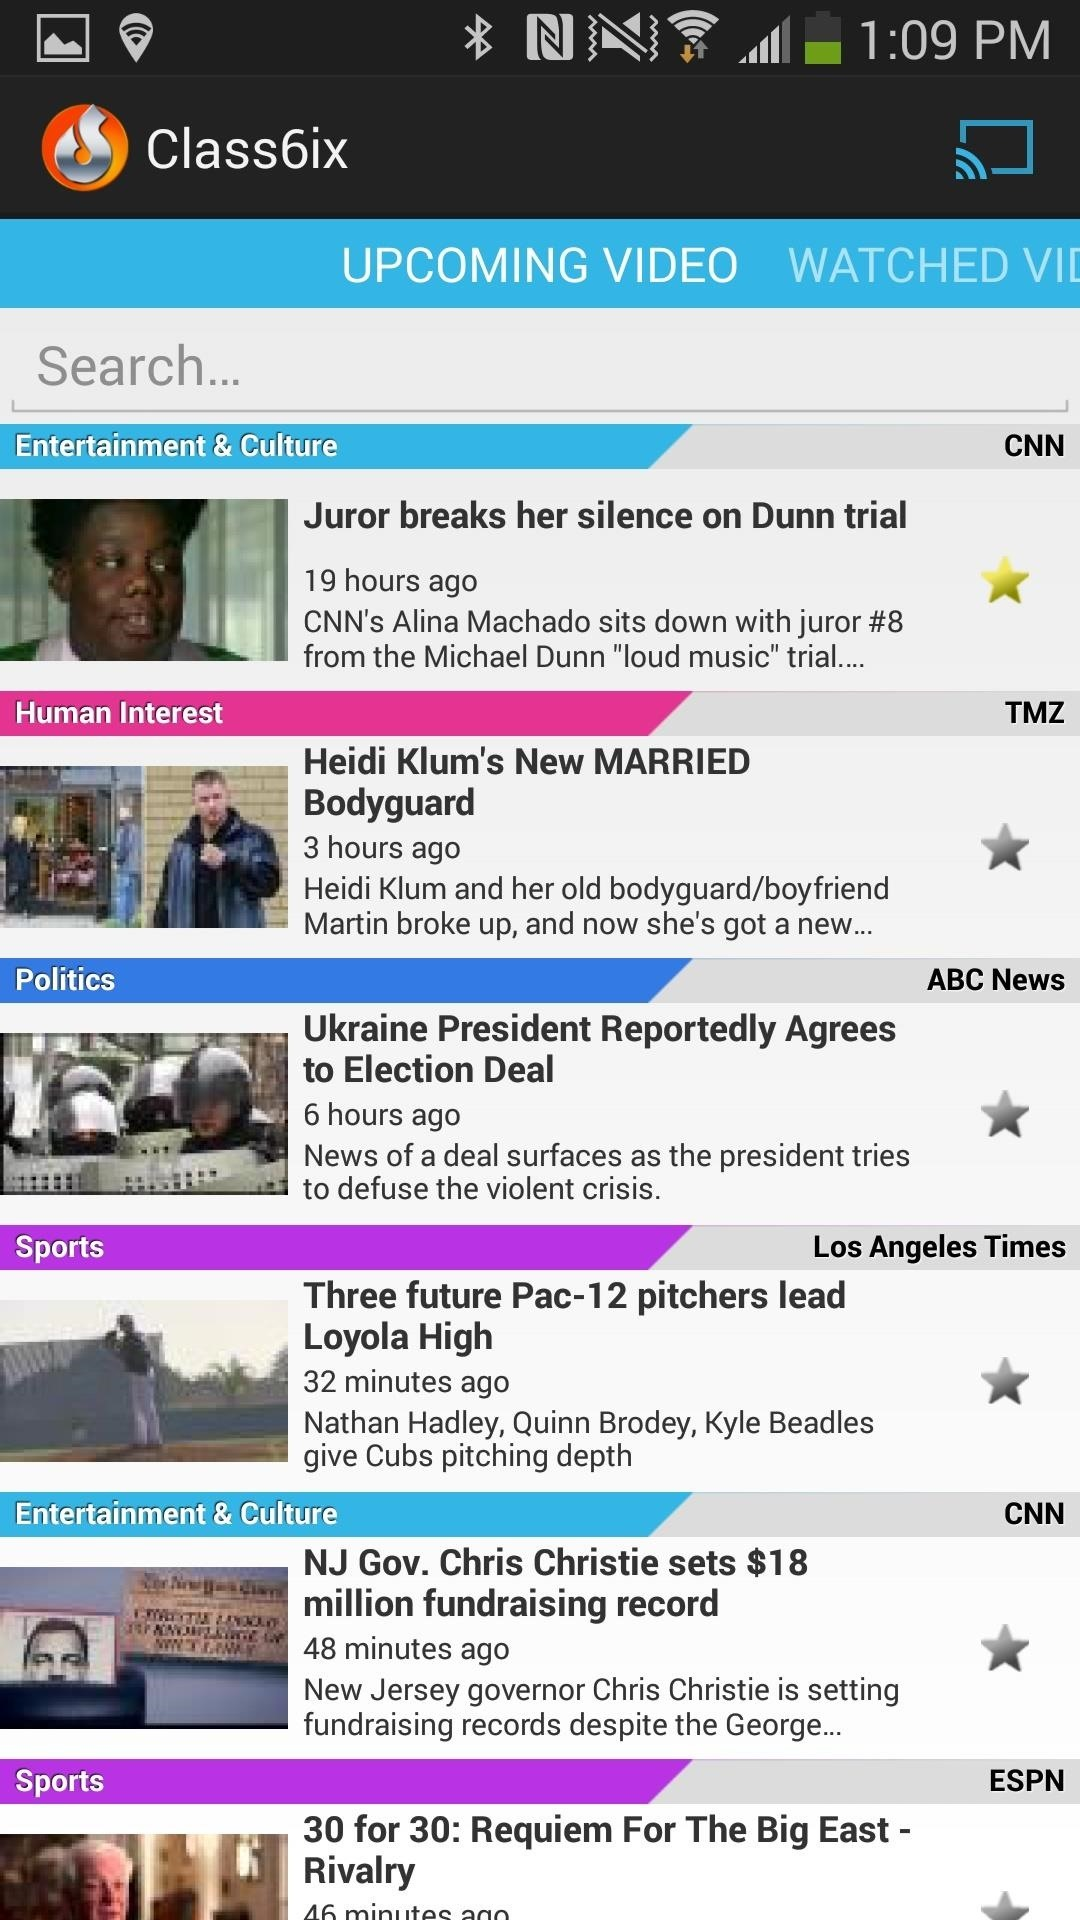 Cast Your Own Personalized News Station Pulled from Local & National Sources to Your TV